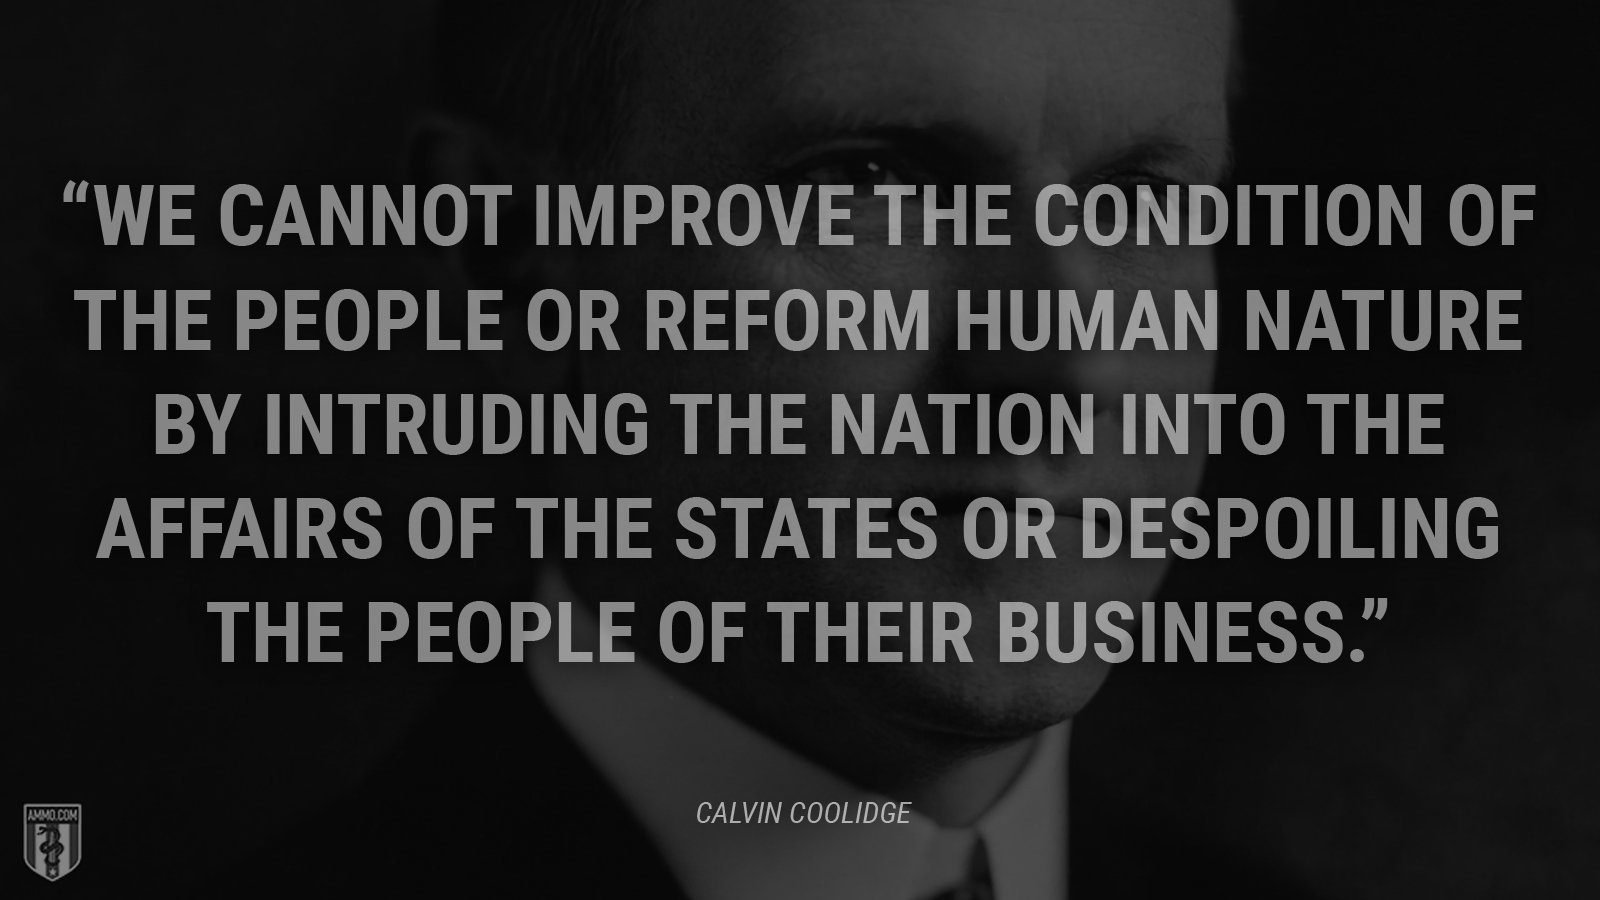 """We cannot improve the condition of the people or reform human nature by intruding the Nation into the affairs of the States or despoiling the people of their business."" - Calvin Coolidge"